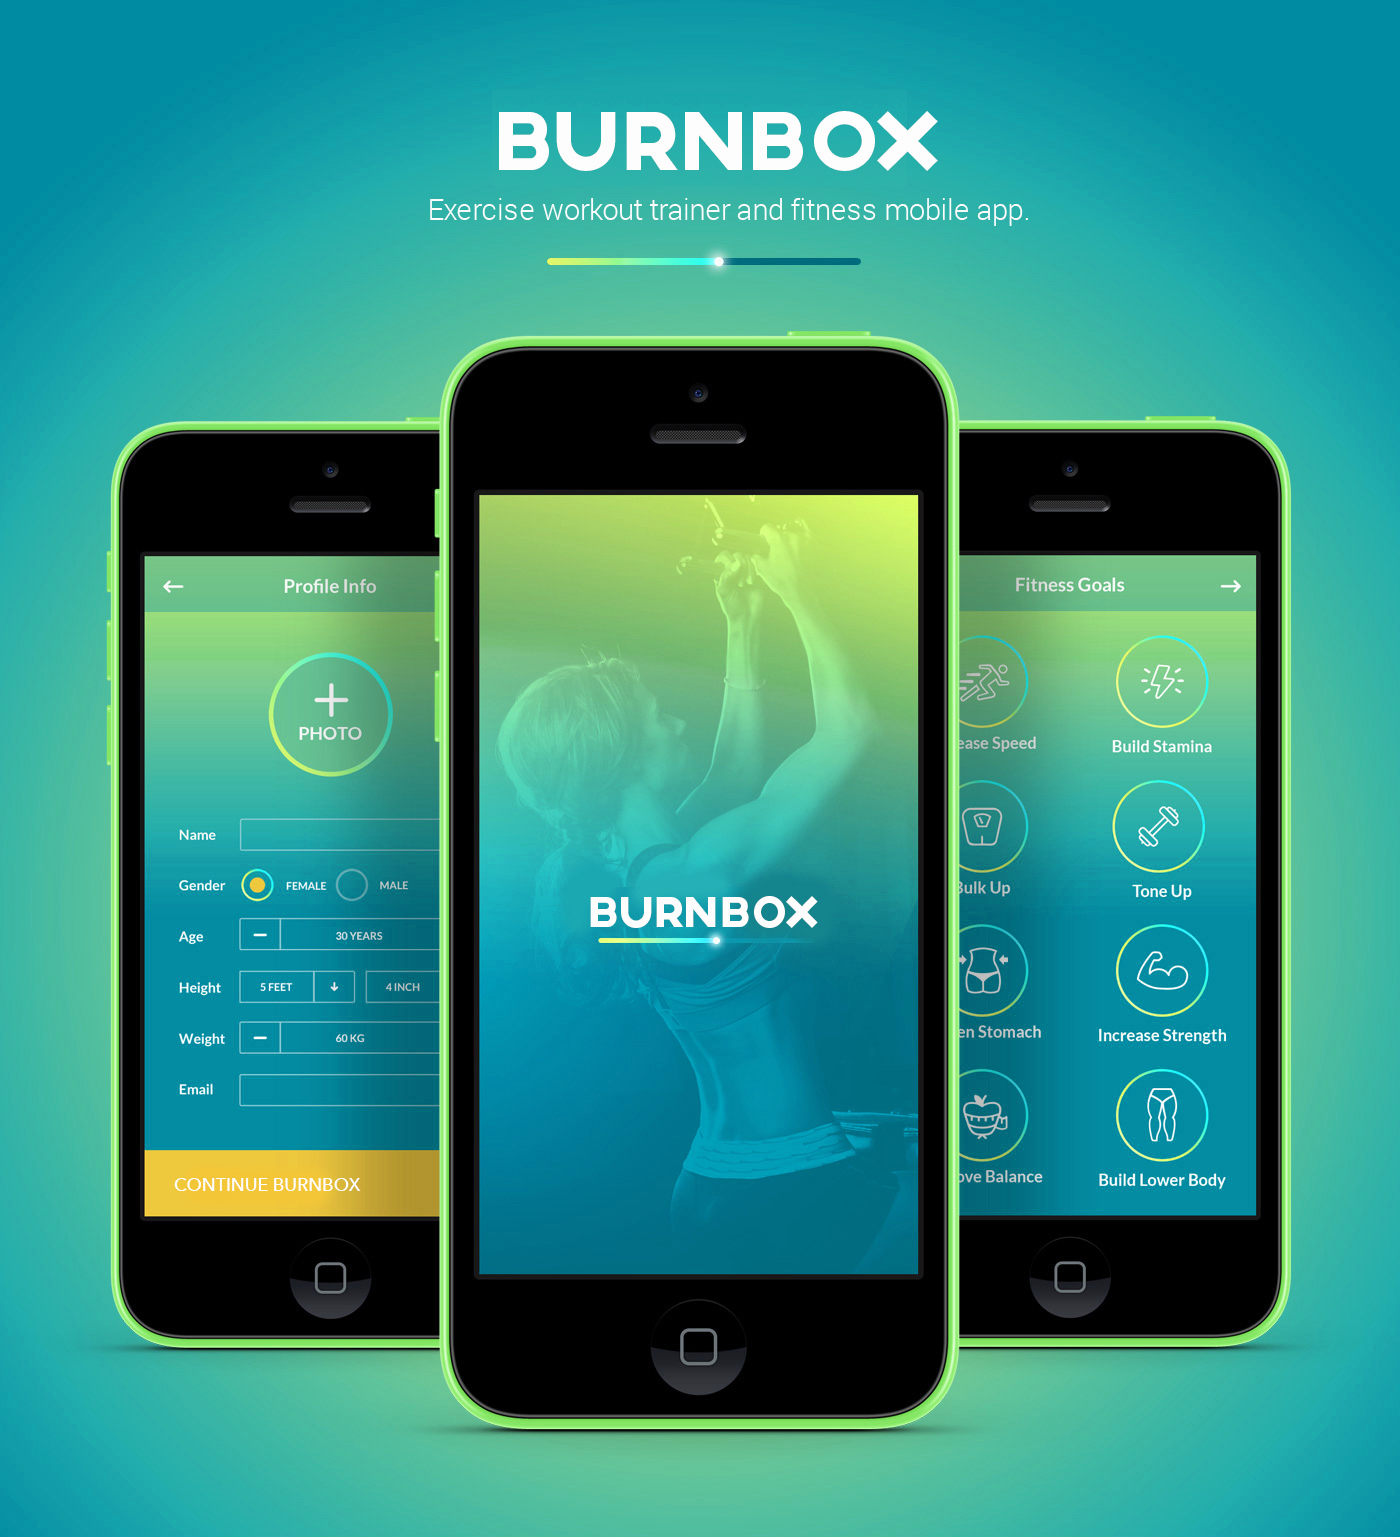 BURNBOX1.jpg